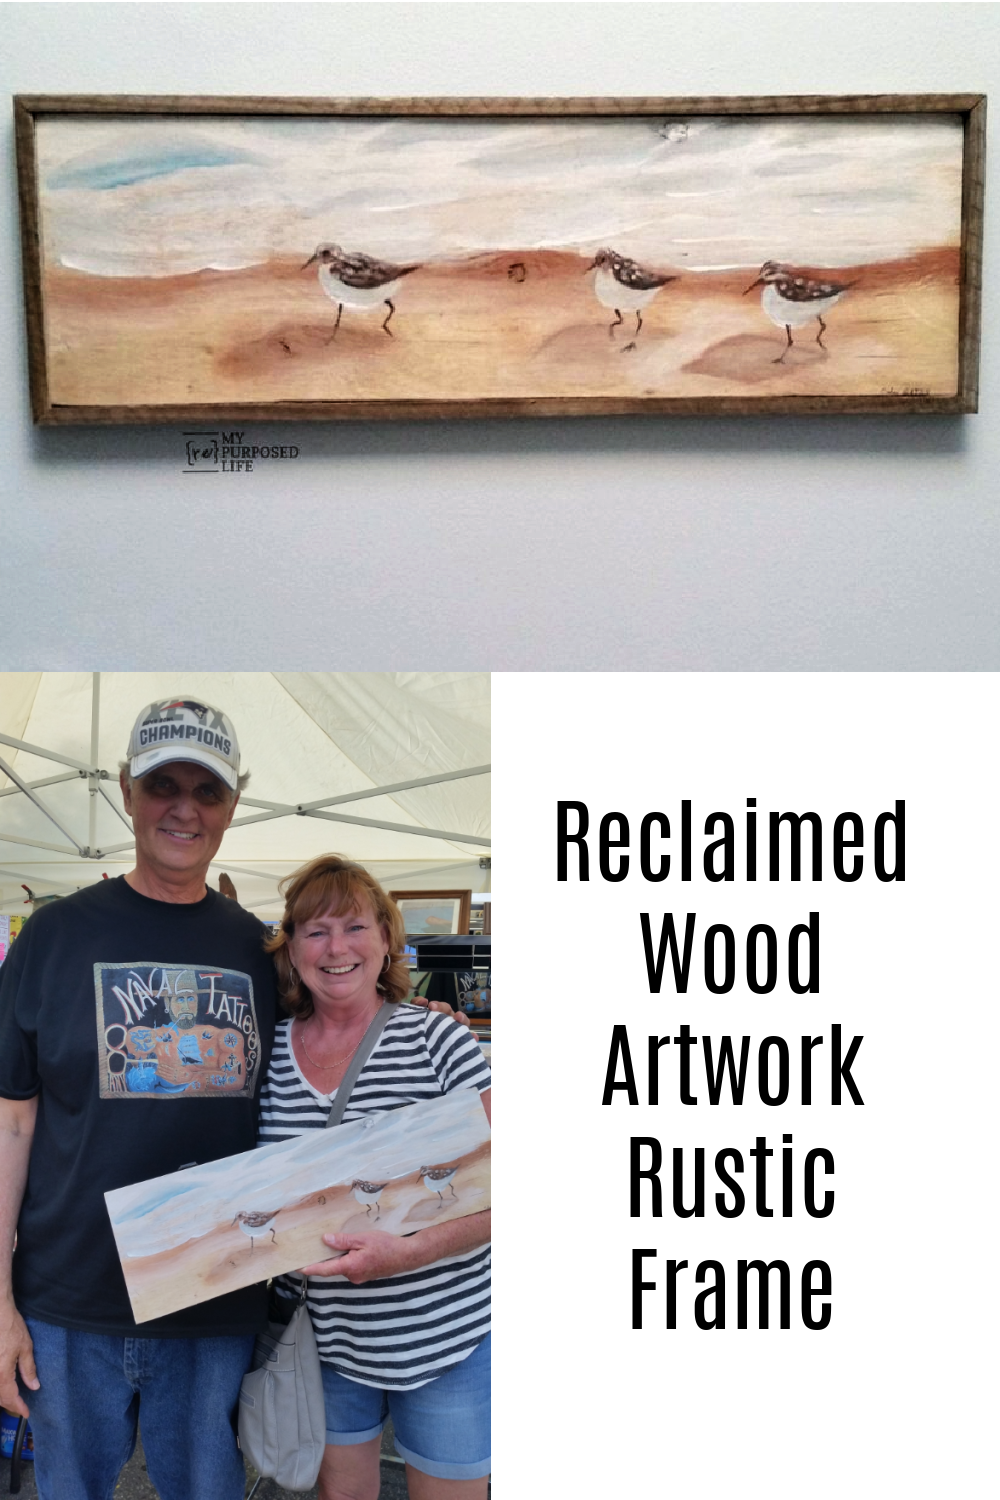 How to make an artwork rust frame for a piece of reclaimed wood. Do you buy artwork while vacationing? It's a great way to bring home a piece of your vacation! I found a beautiful piece painted on reclaimed wood. PERFECT! But I thought it would look a lot better with a frame. #MyRepurposedLife #repurposed #reclaimed #artwork #rustic #frame via @repurposedlife